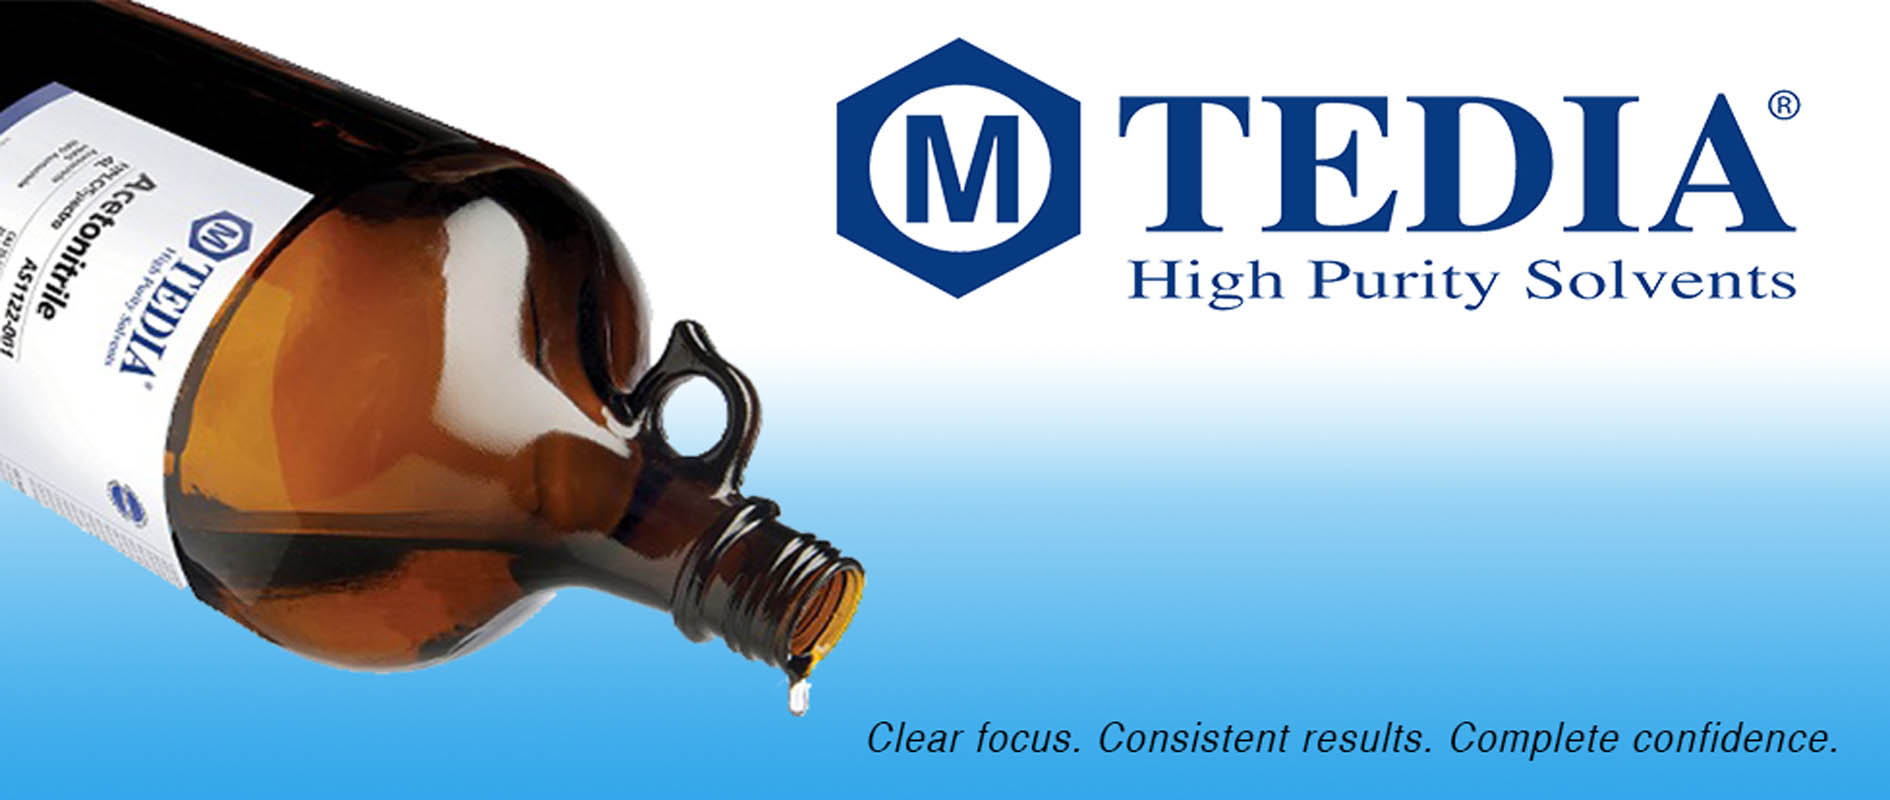 High Purity Solvents